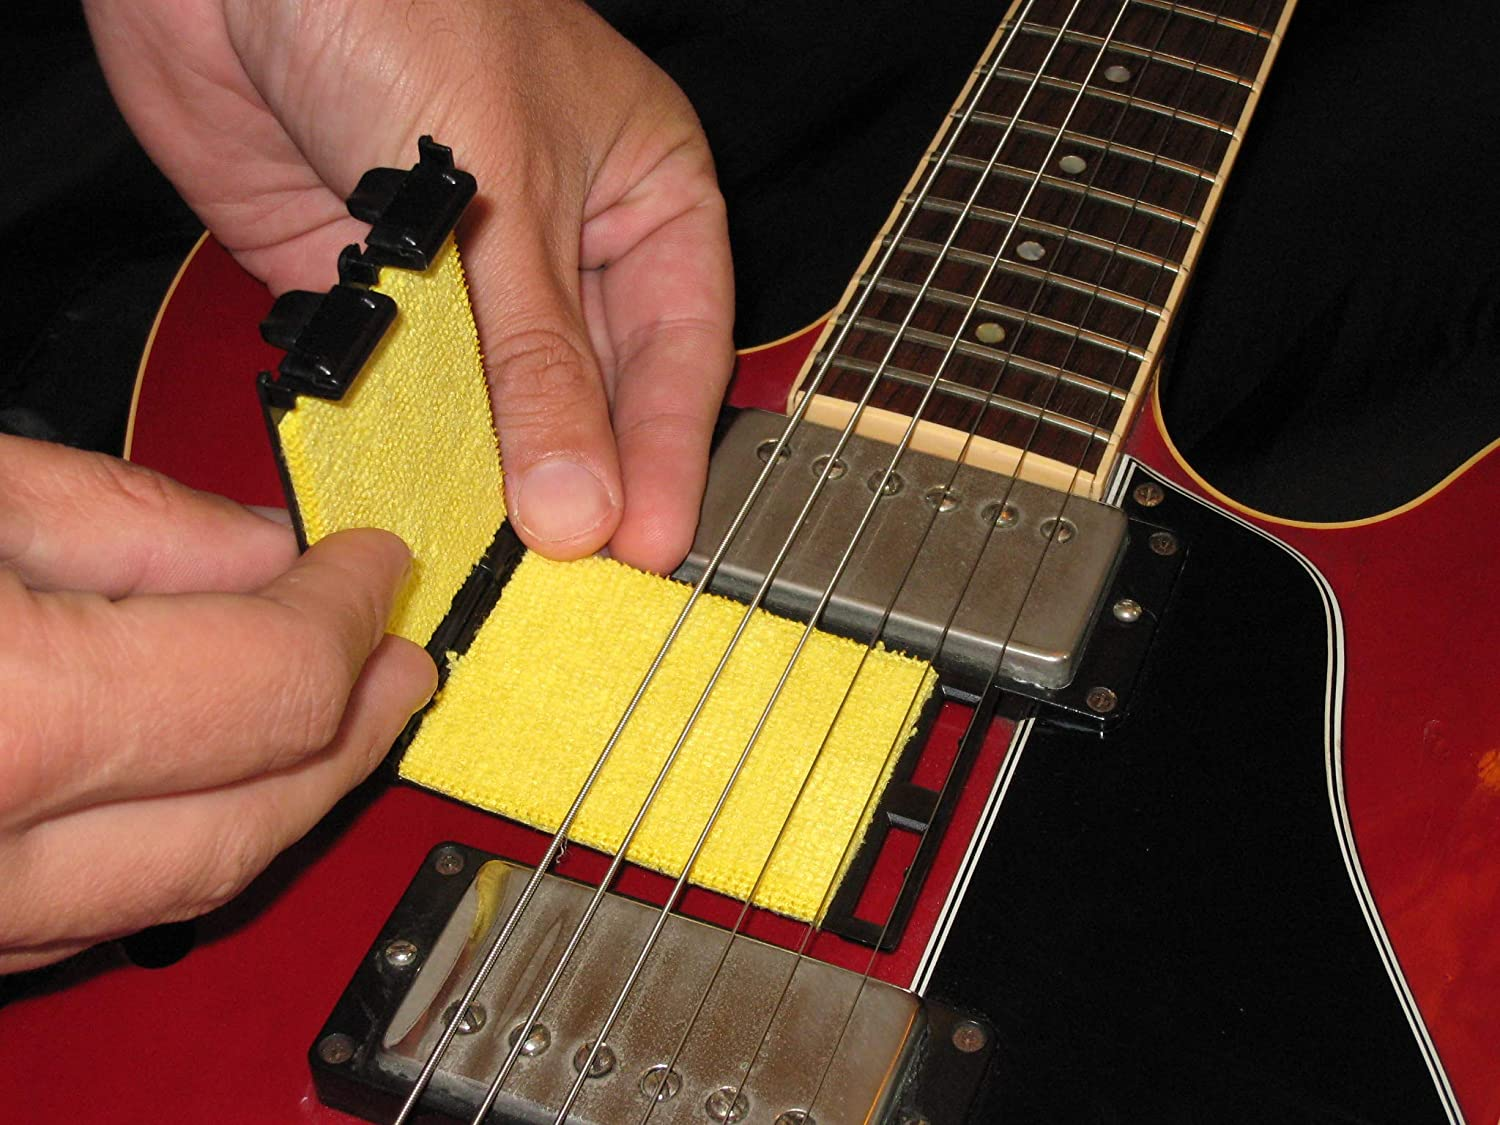 Courier shipping free shipping The Max 46% OFF String Cleaner by ToneGear